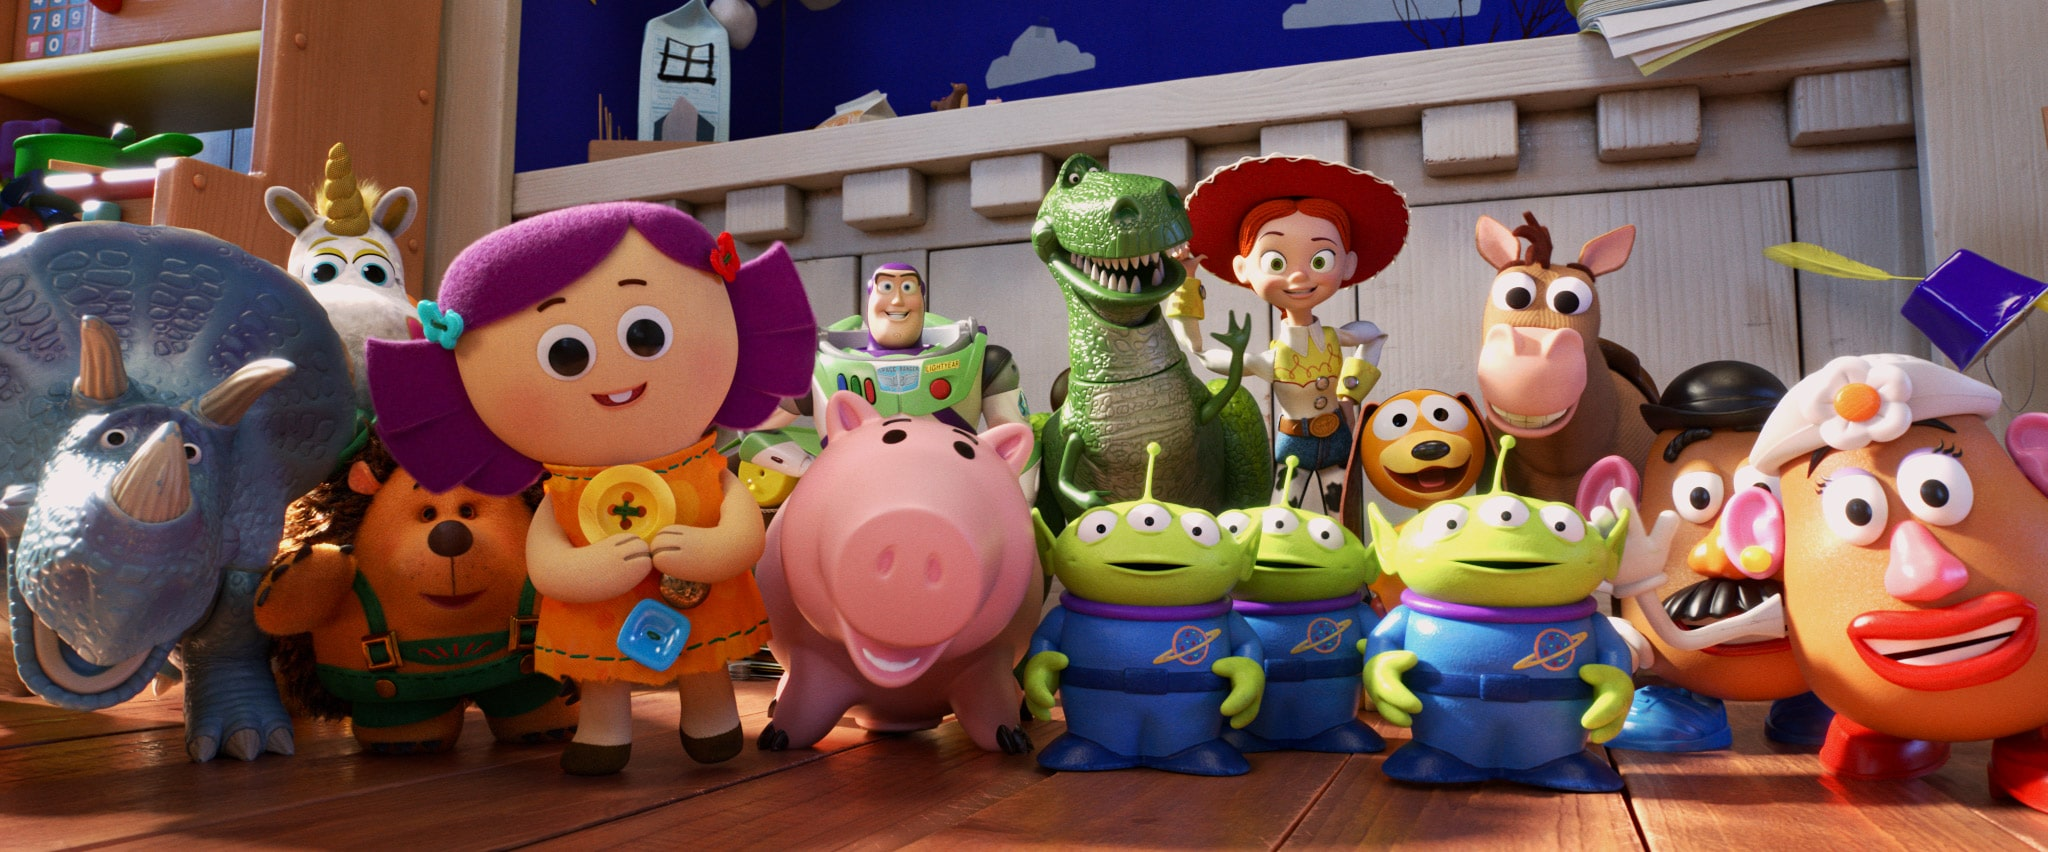 Toy Story 4 old toys line up